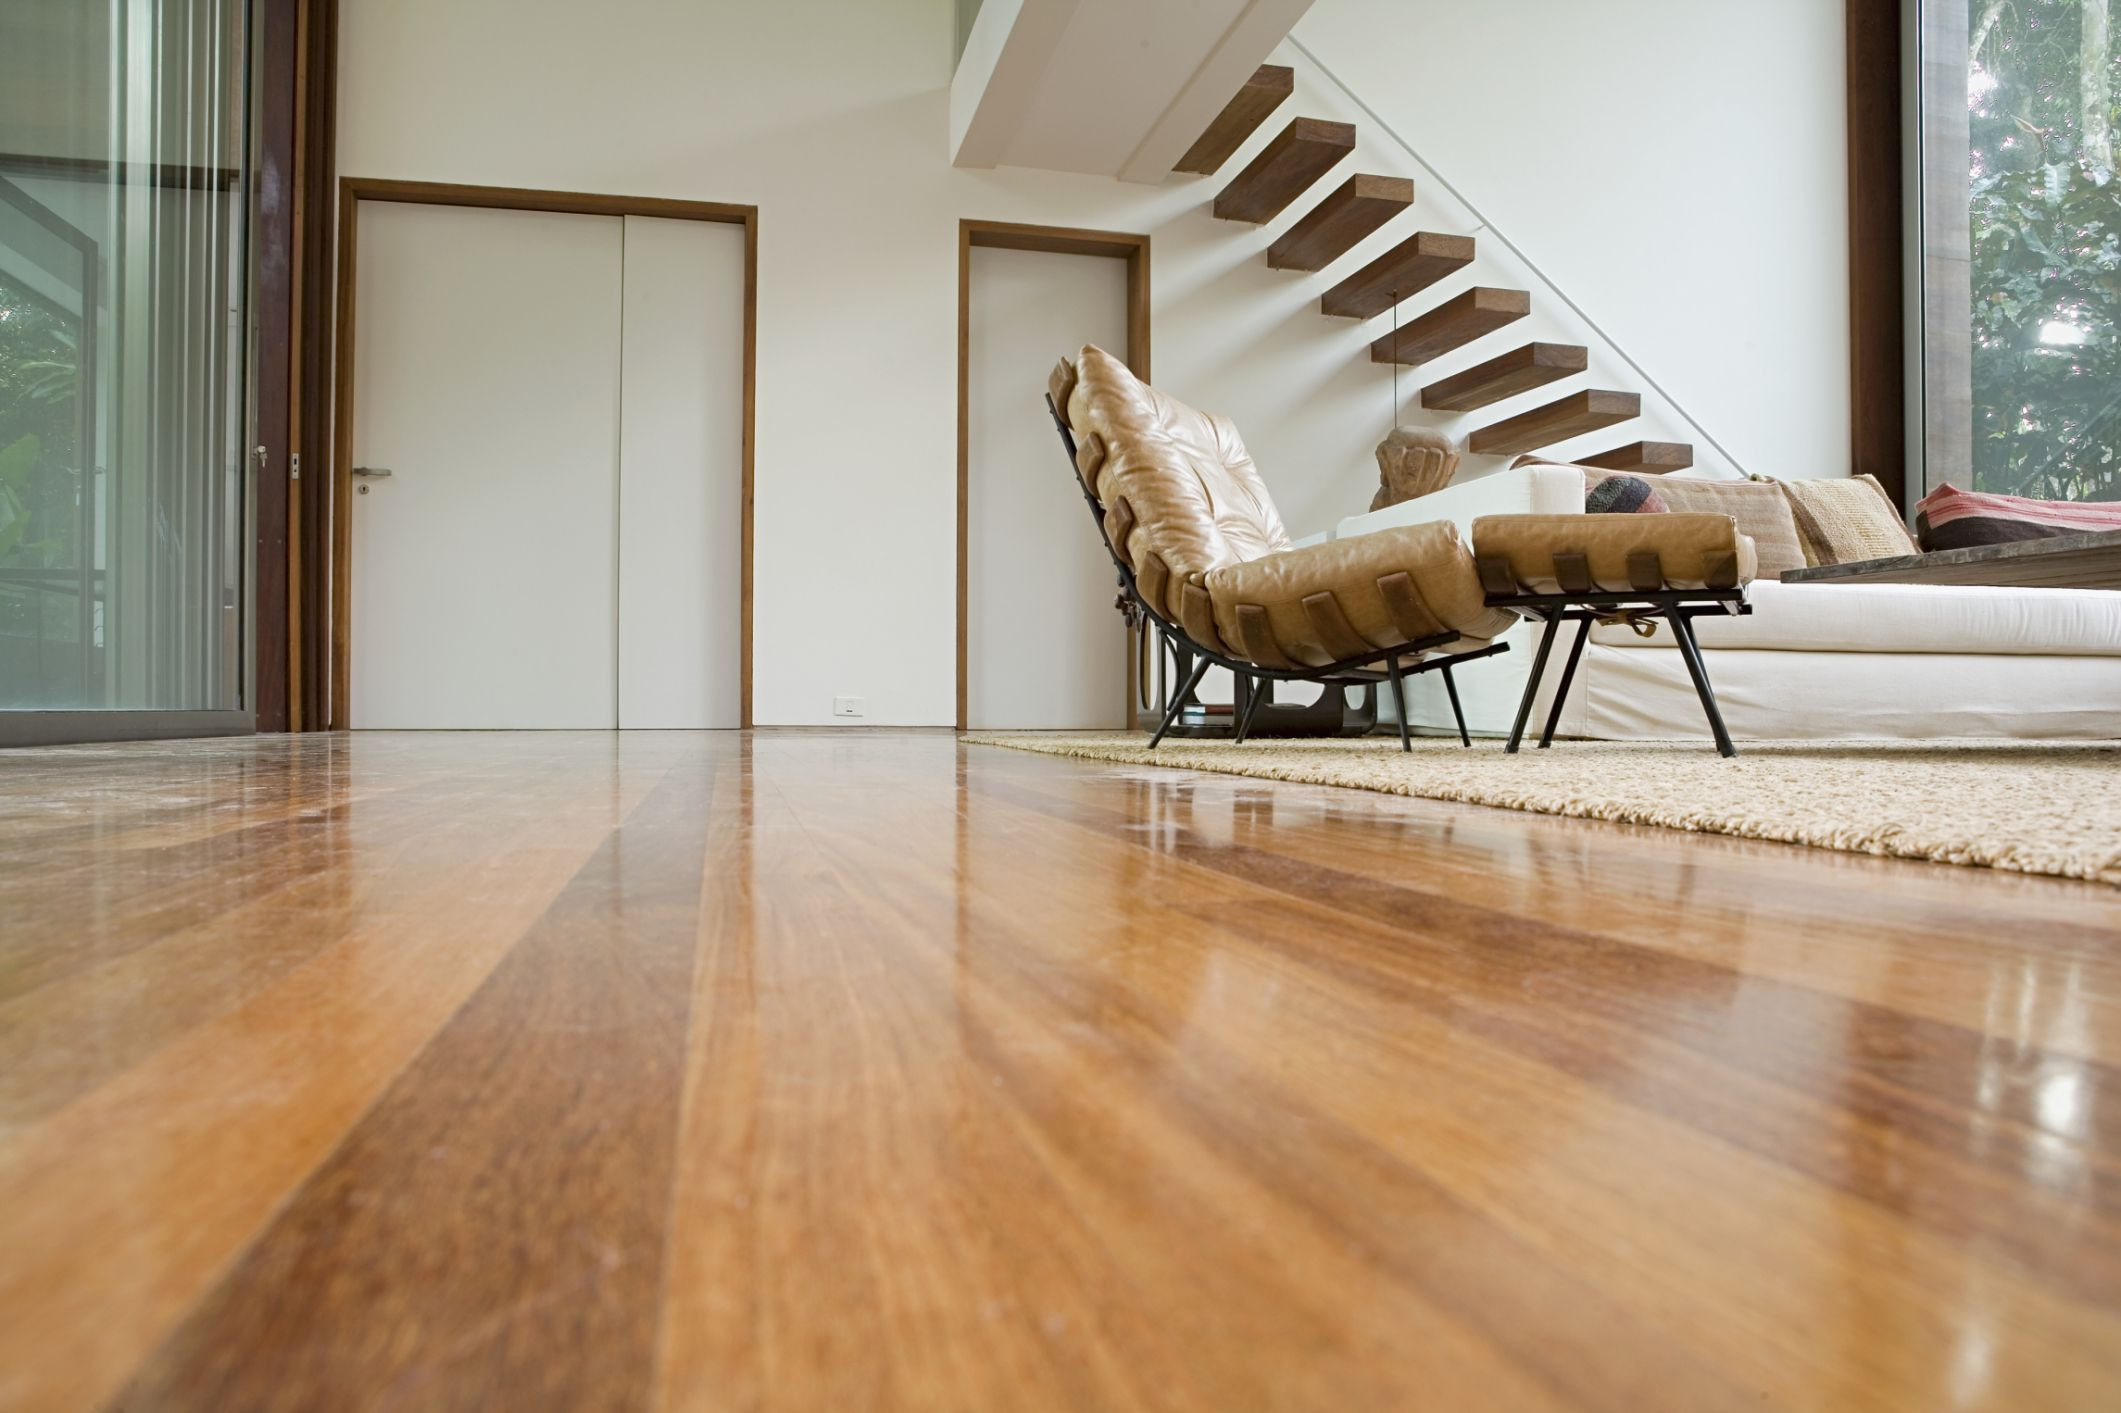 cleaning engineered hardwood floors tips of engineered wood flooring vs solid wood flooring pertaining to 200571260 001 highres 56a49dec5f9b58b7d0d7dc1e